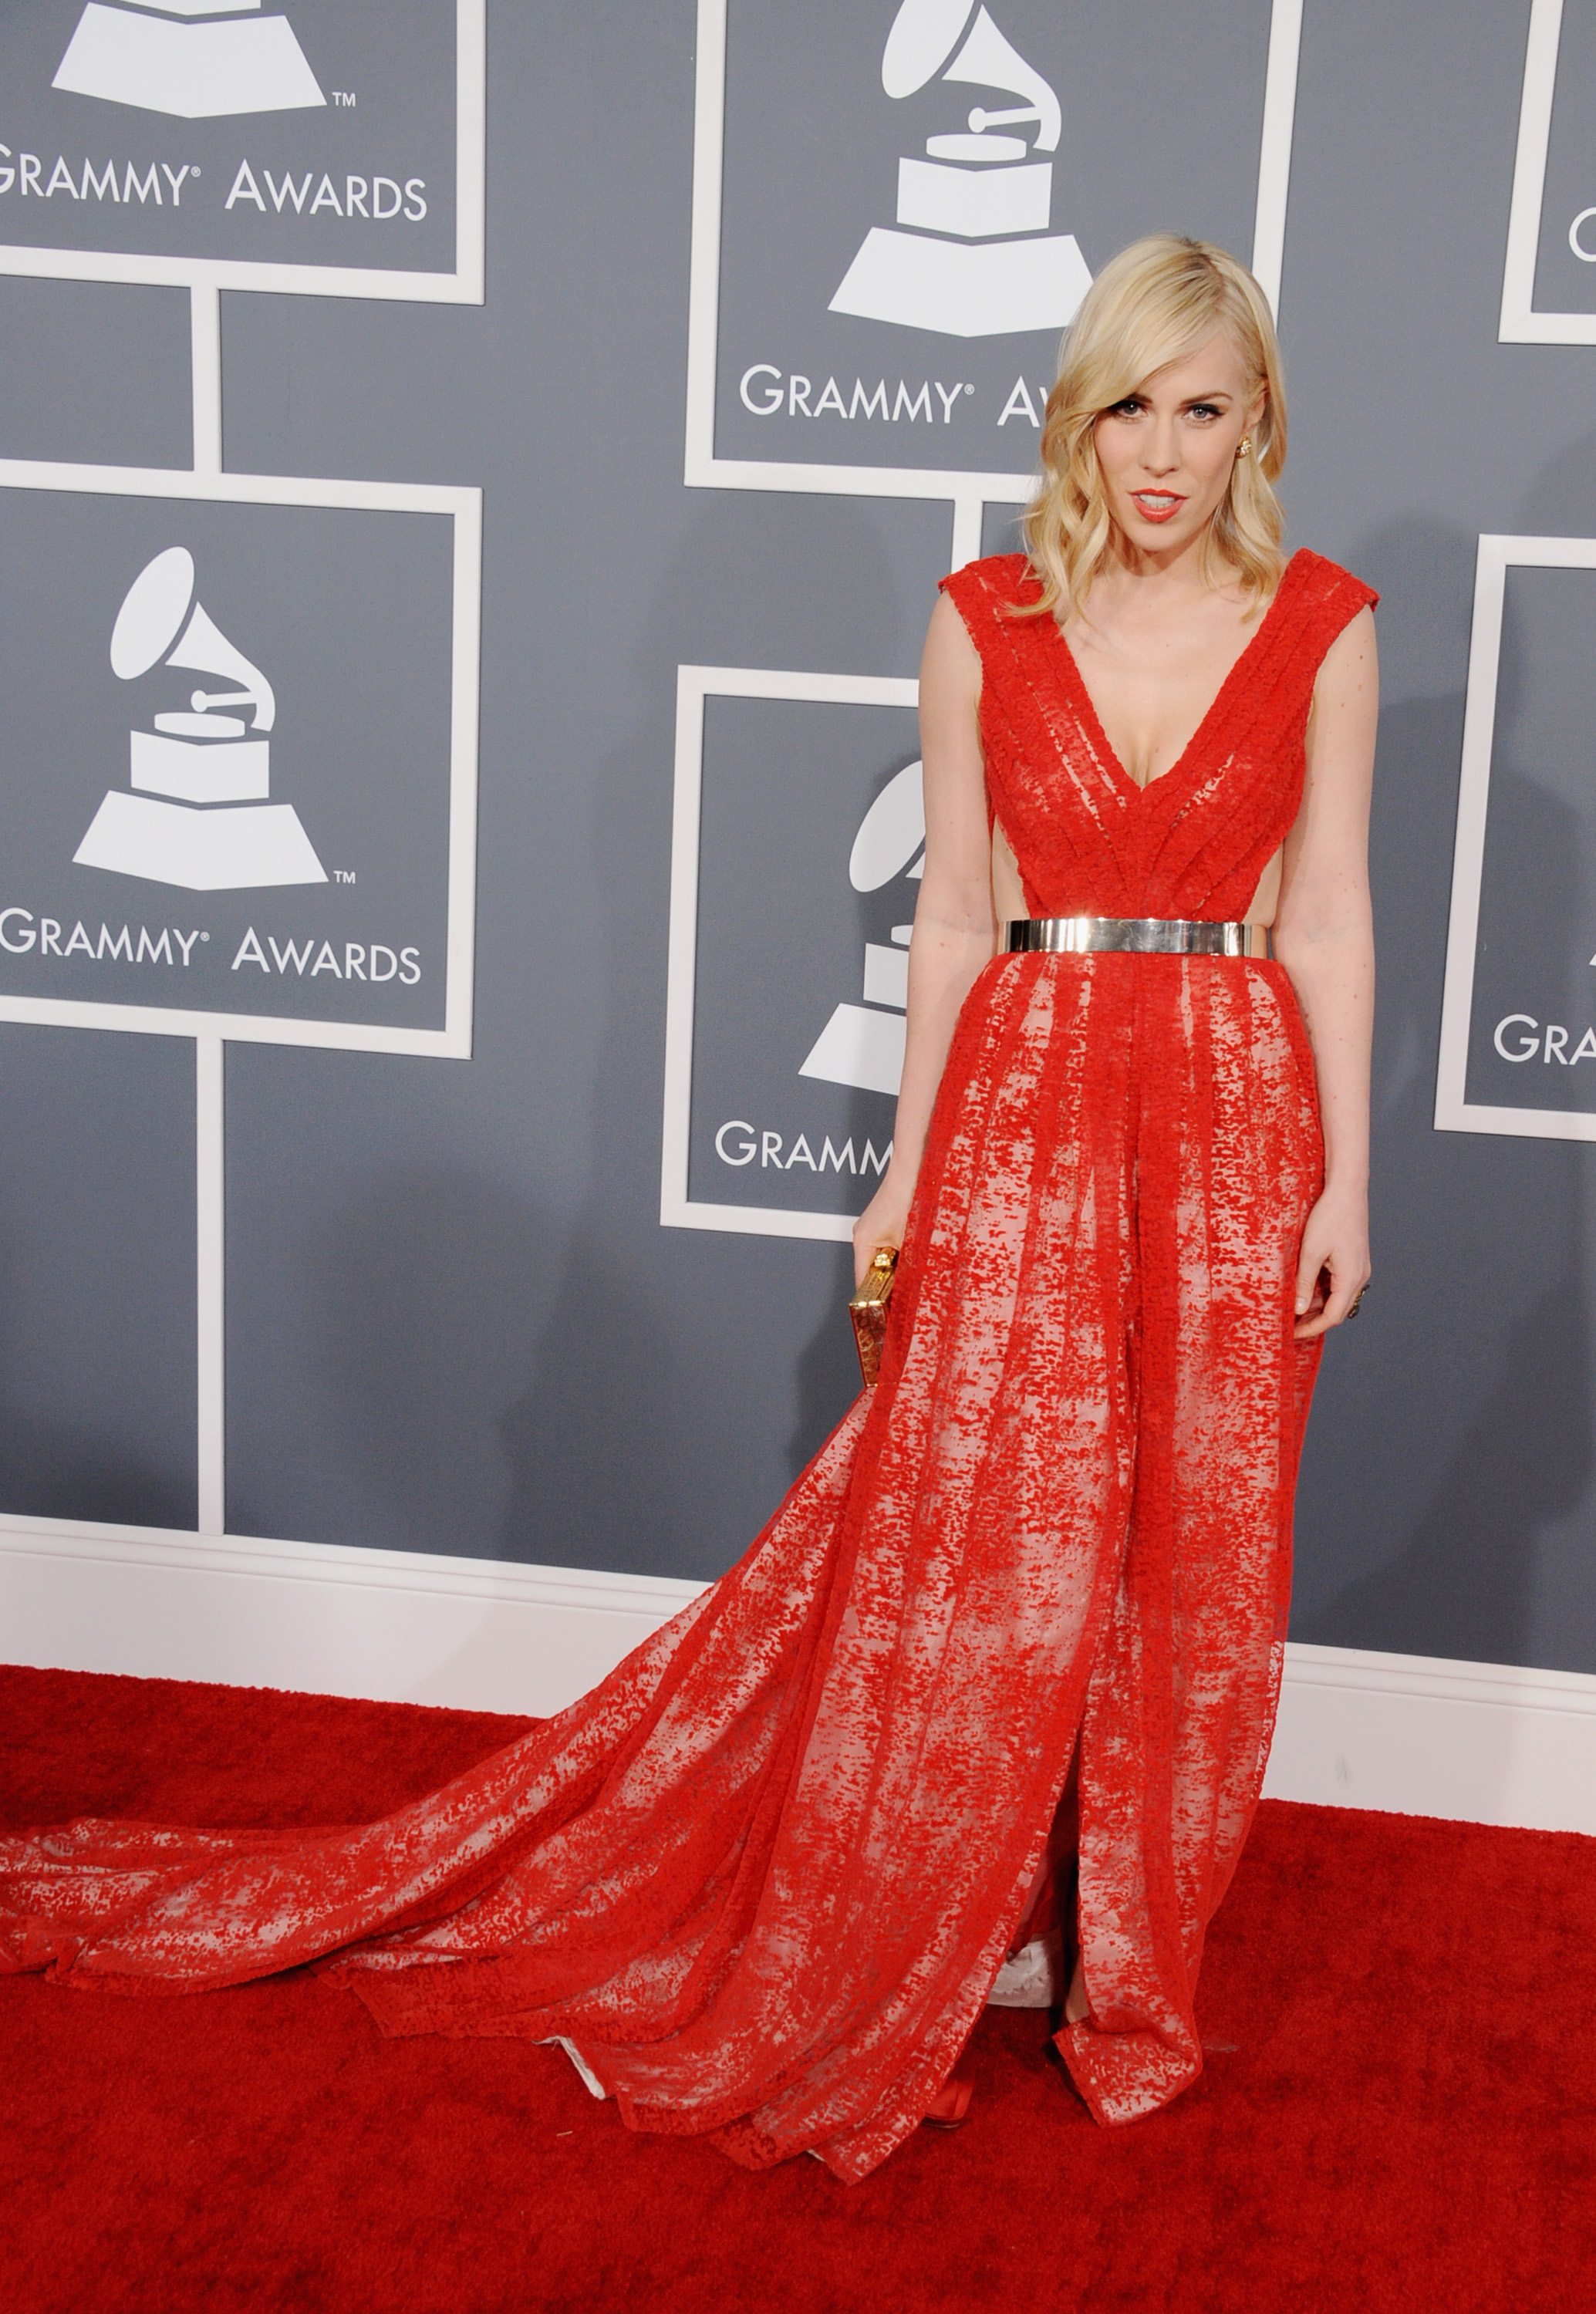 Natasha Bedingfield wore red to the Grammys.